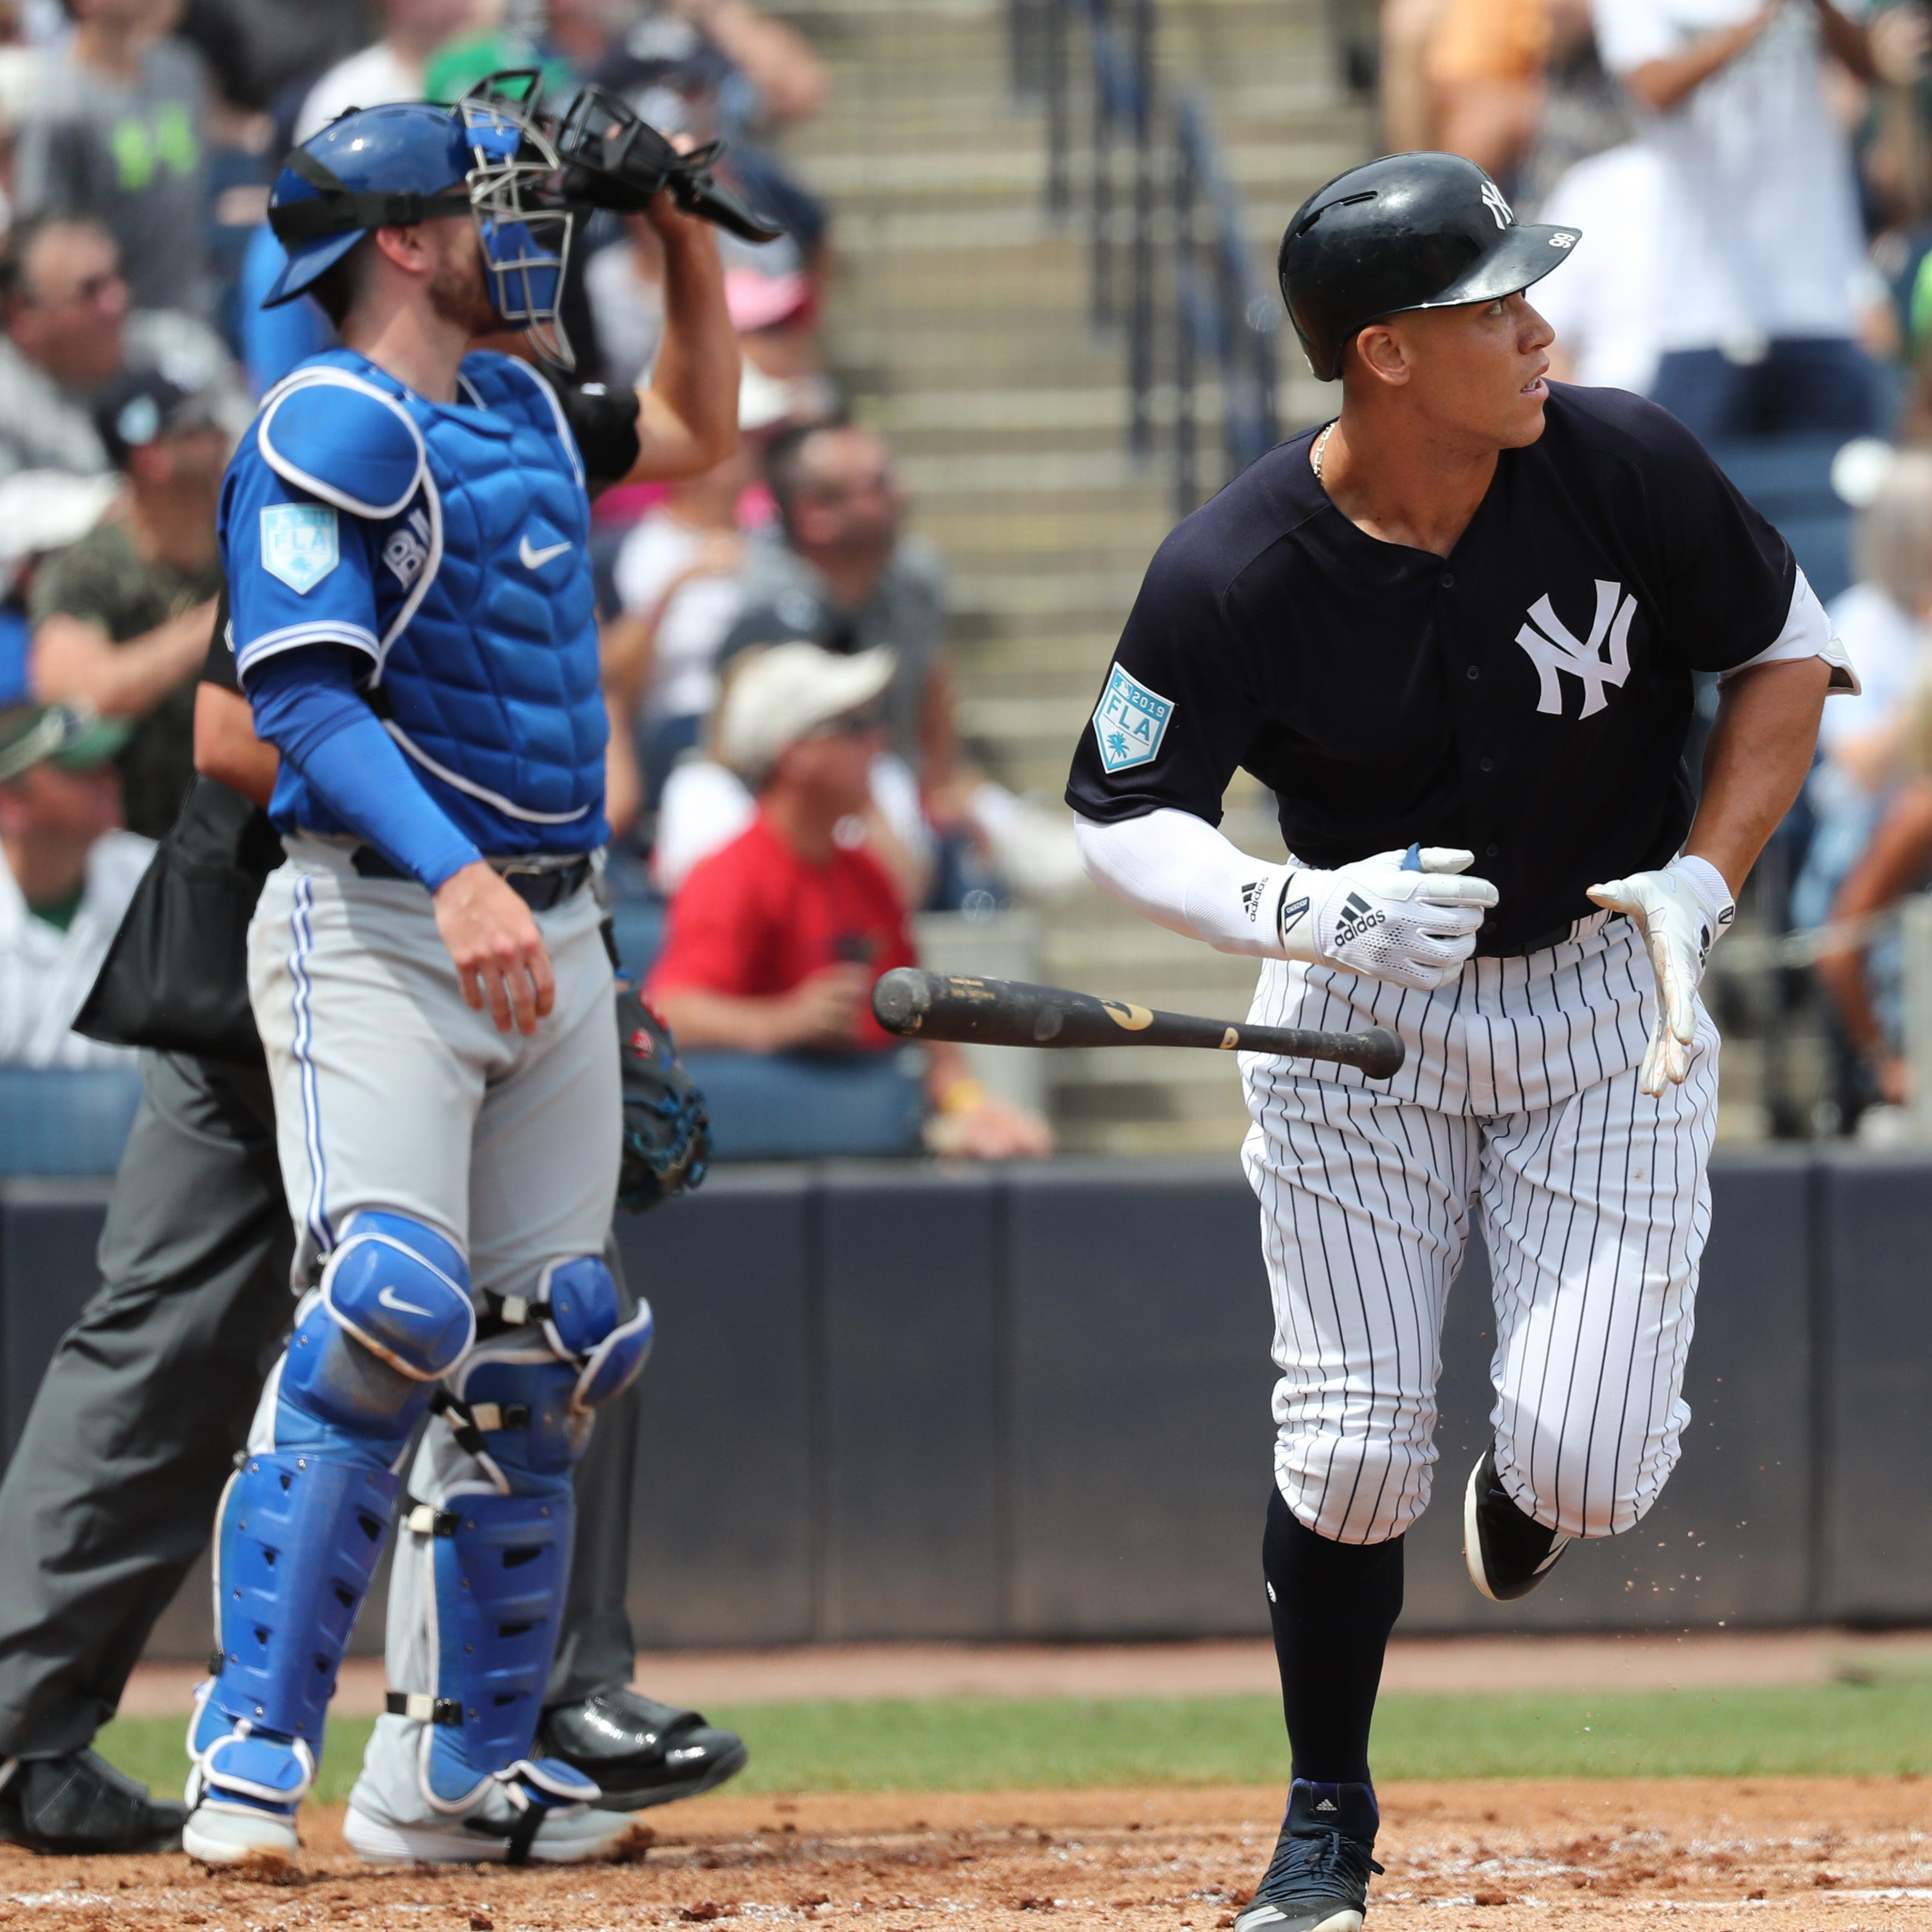 A look at New York Yankees' week ahead as Florida spring training winds down